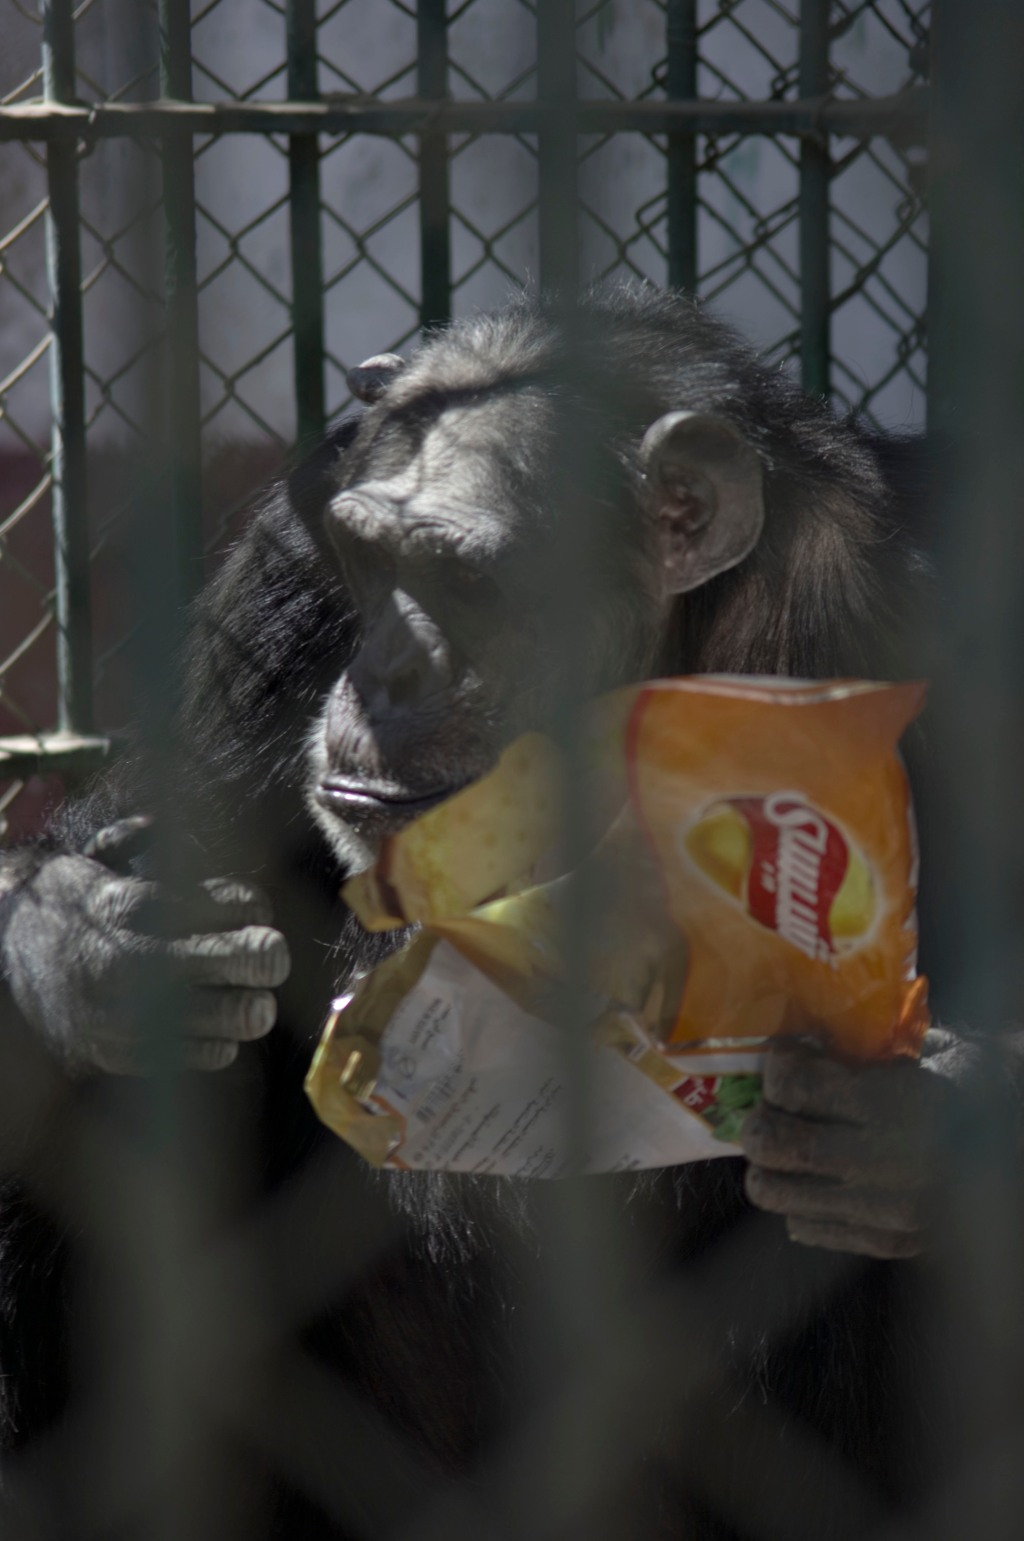 chimpanzee, zoo, giza crisps, cairo, photography, giza